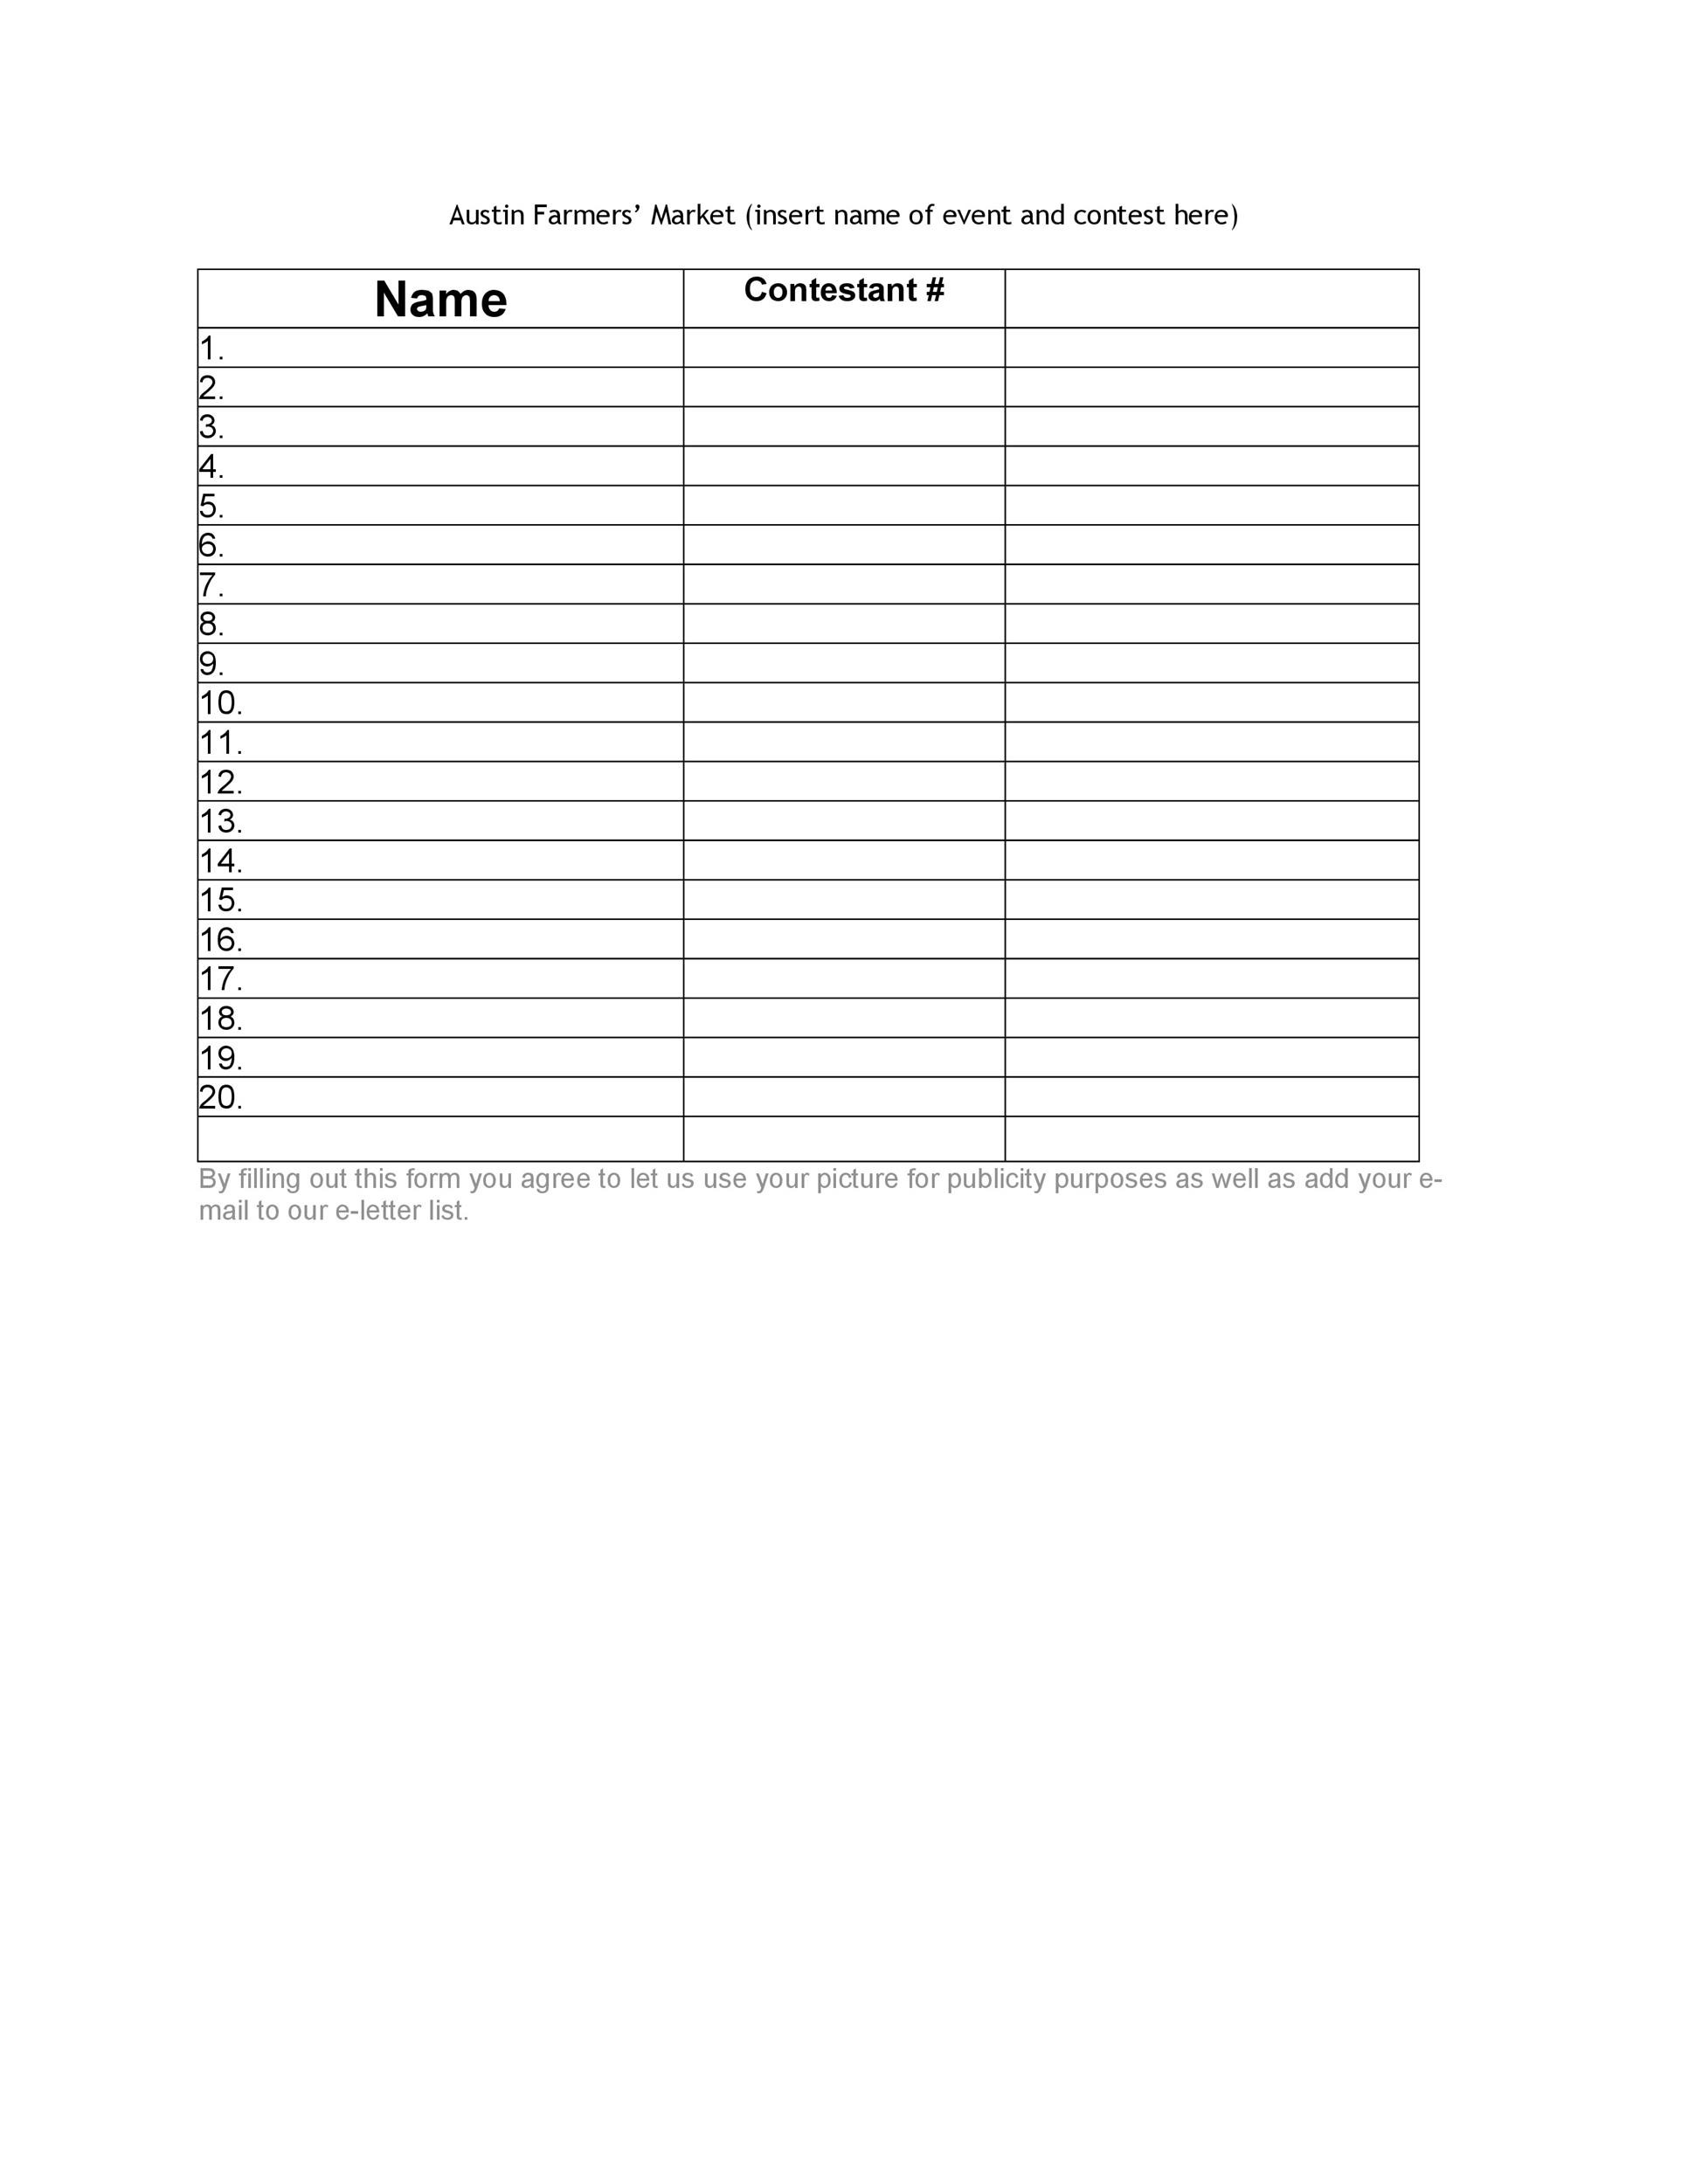 Sign In Sheet Doc  BesikEightyCo